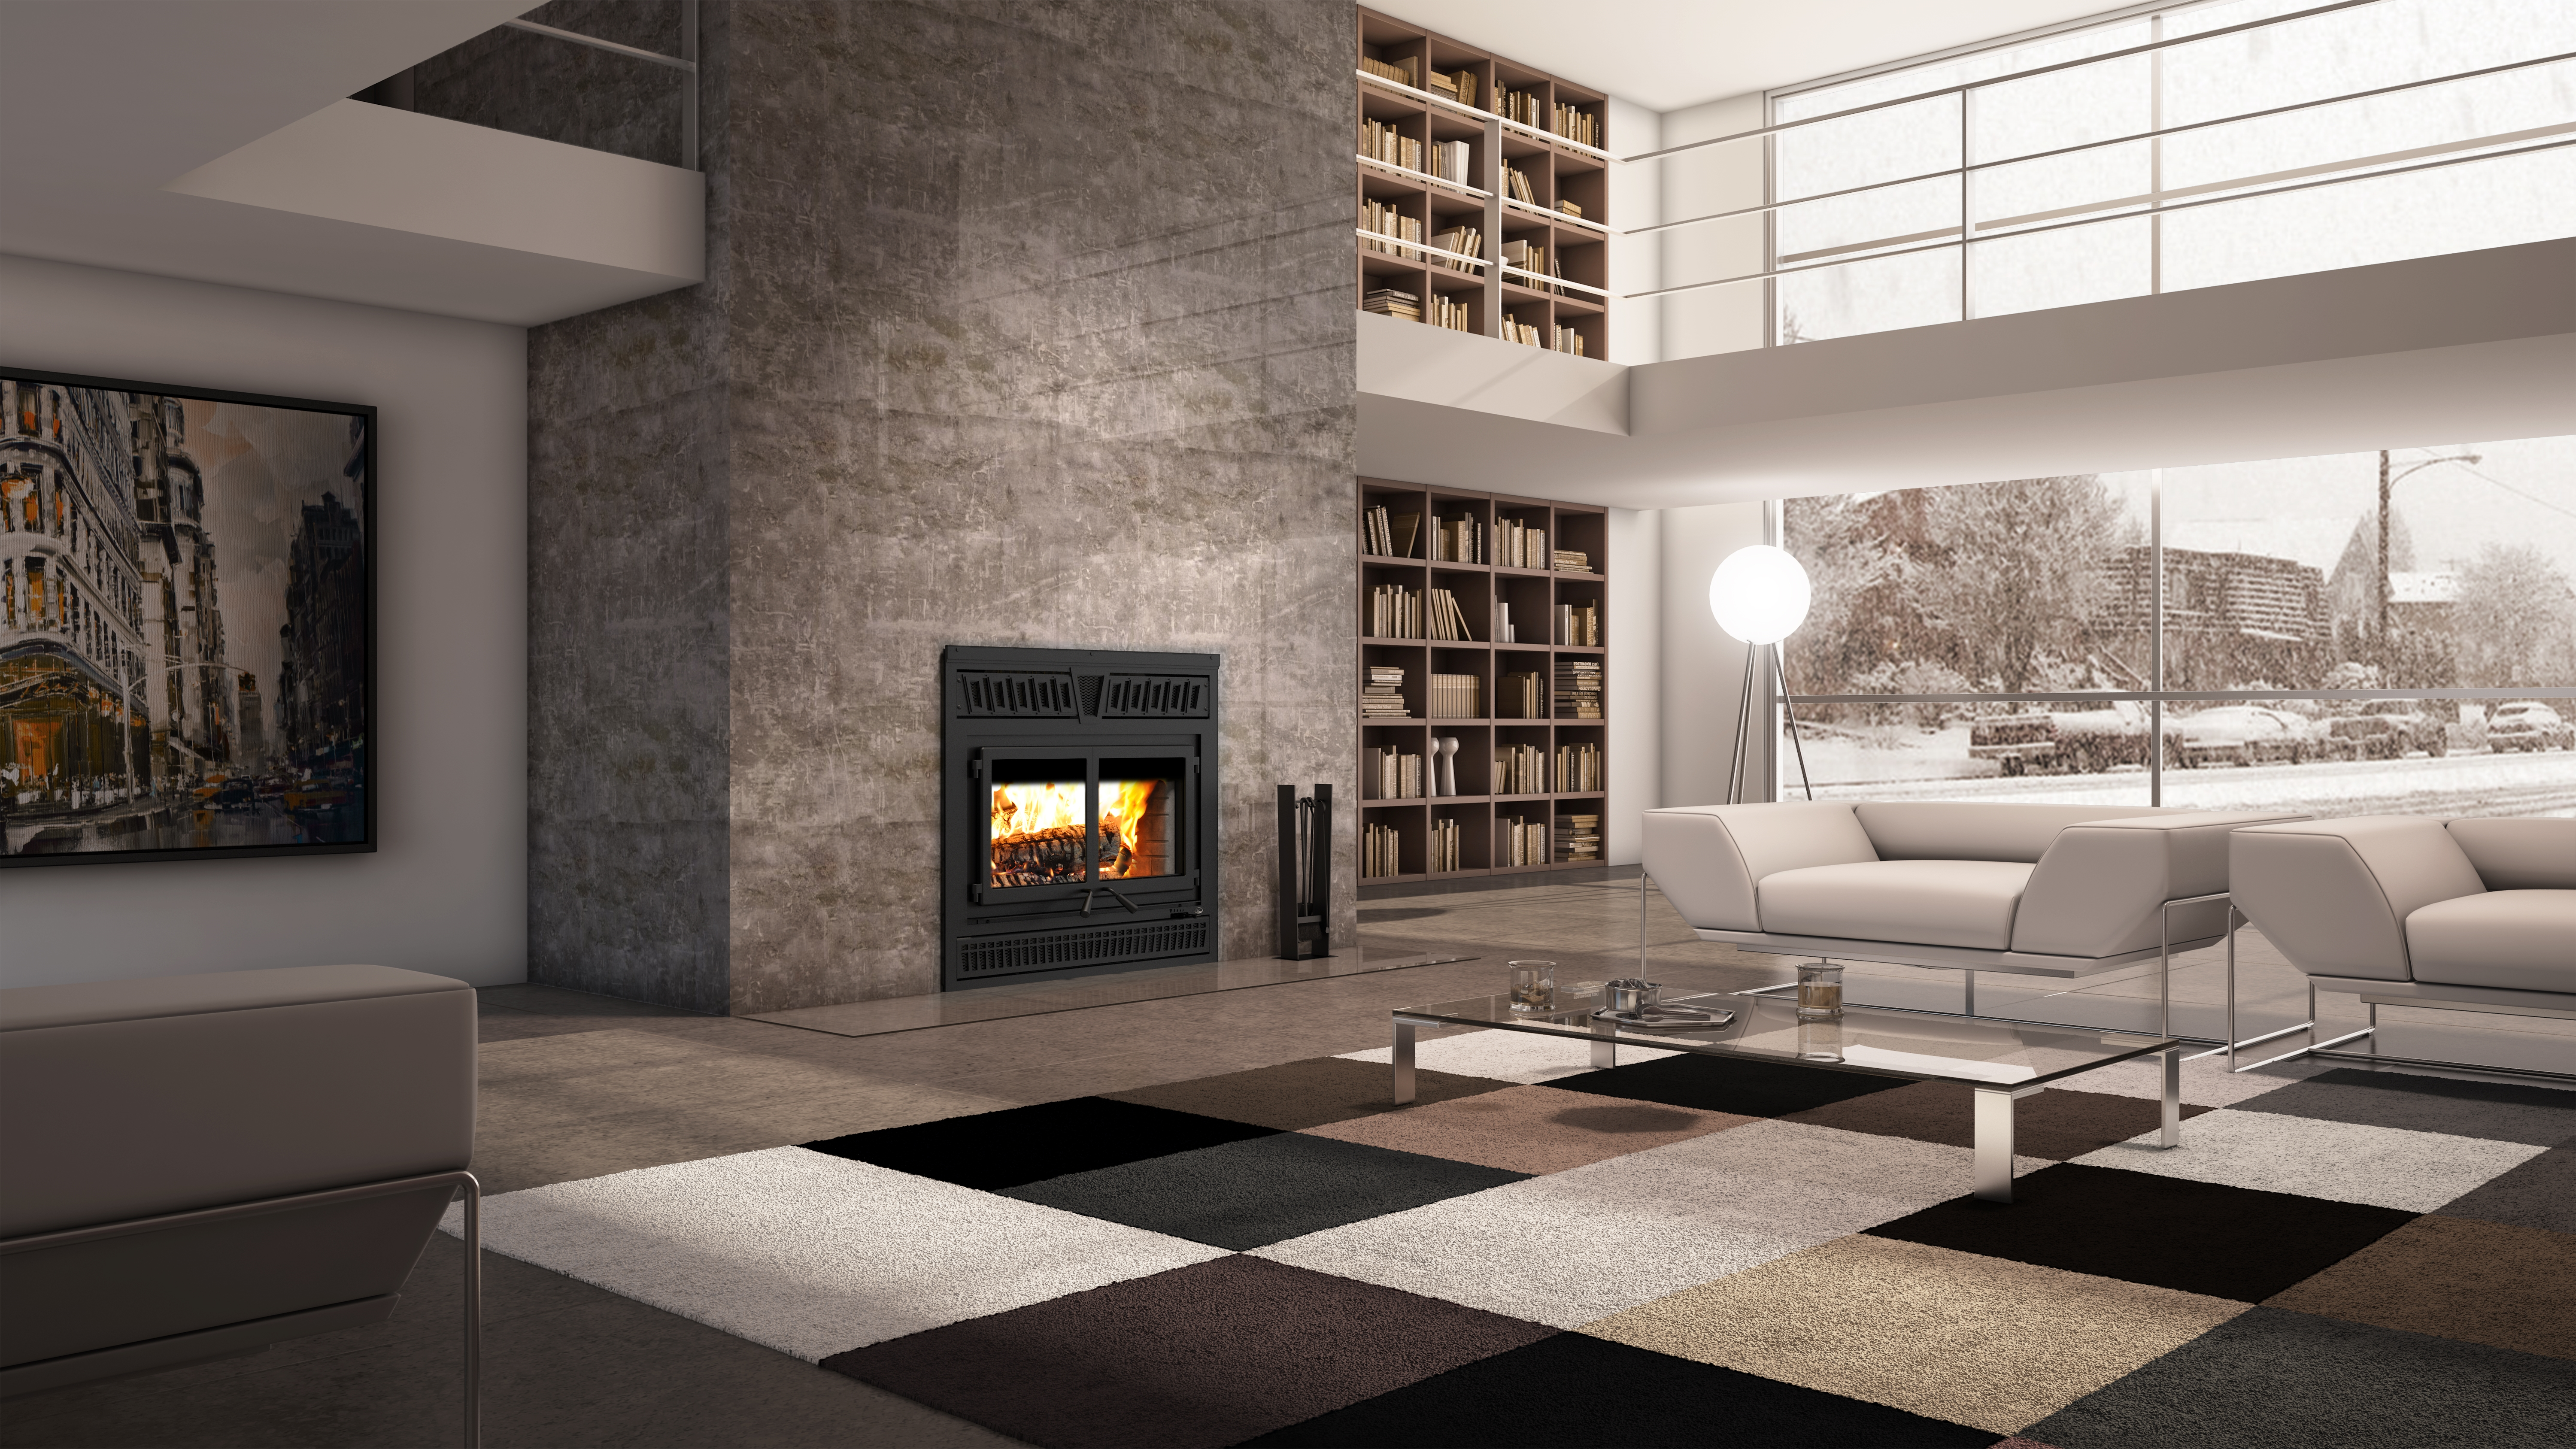 a fireplace how tutorials clean w fit to max apartment therapy broom